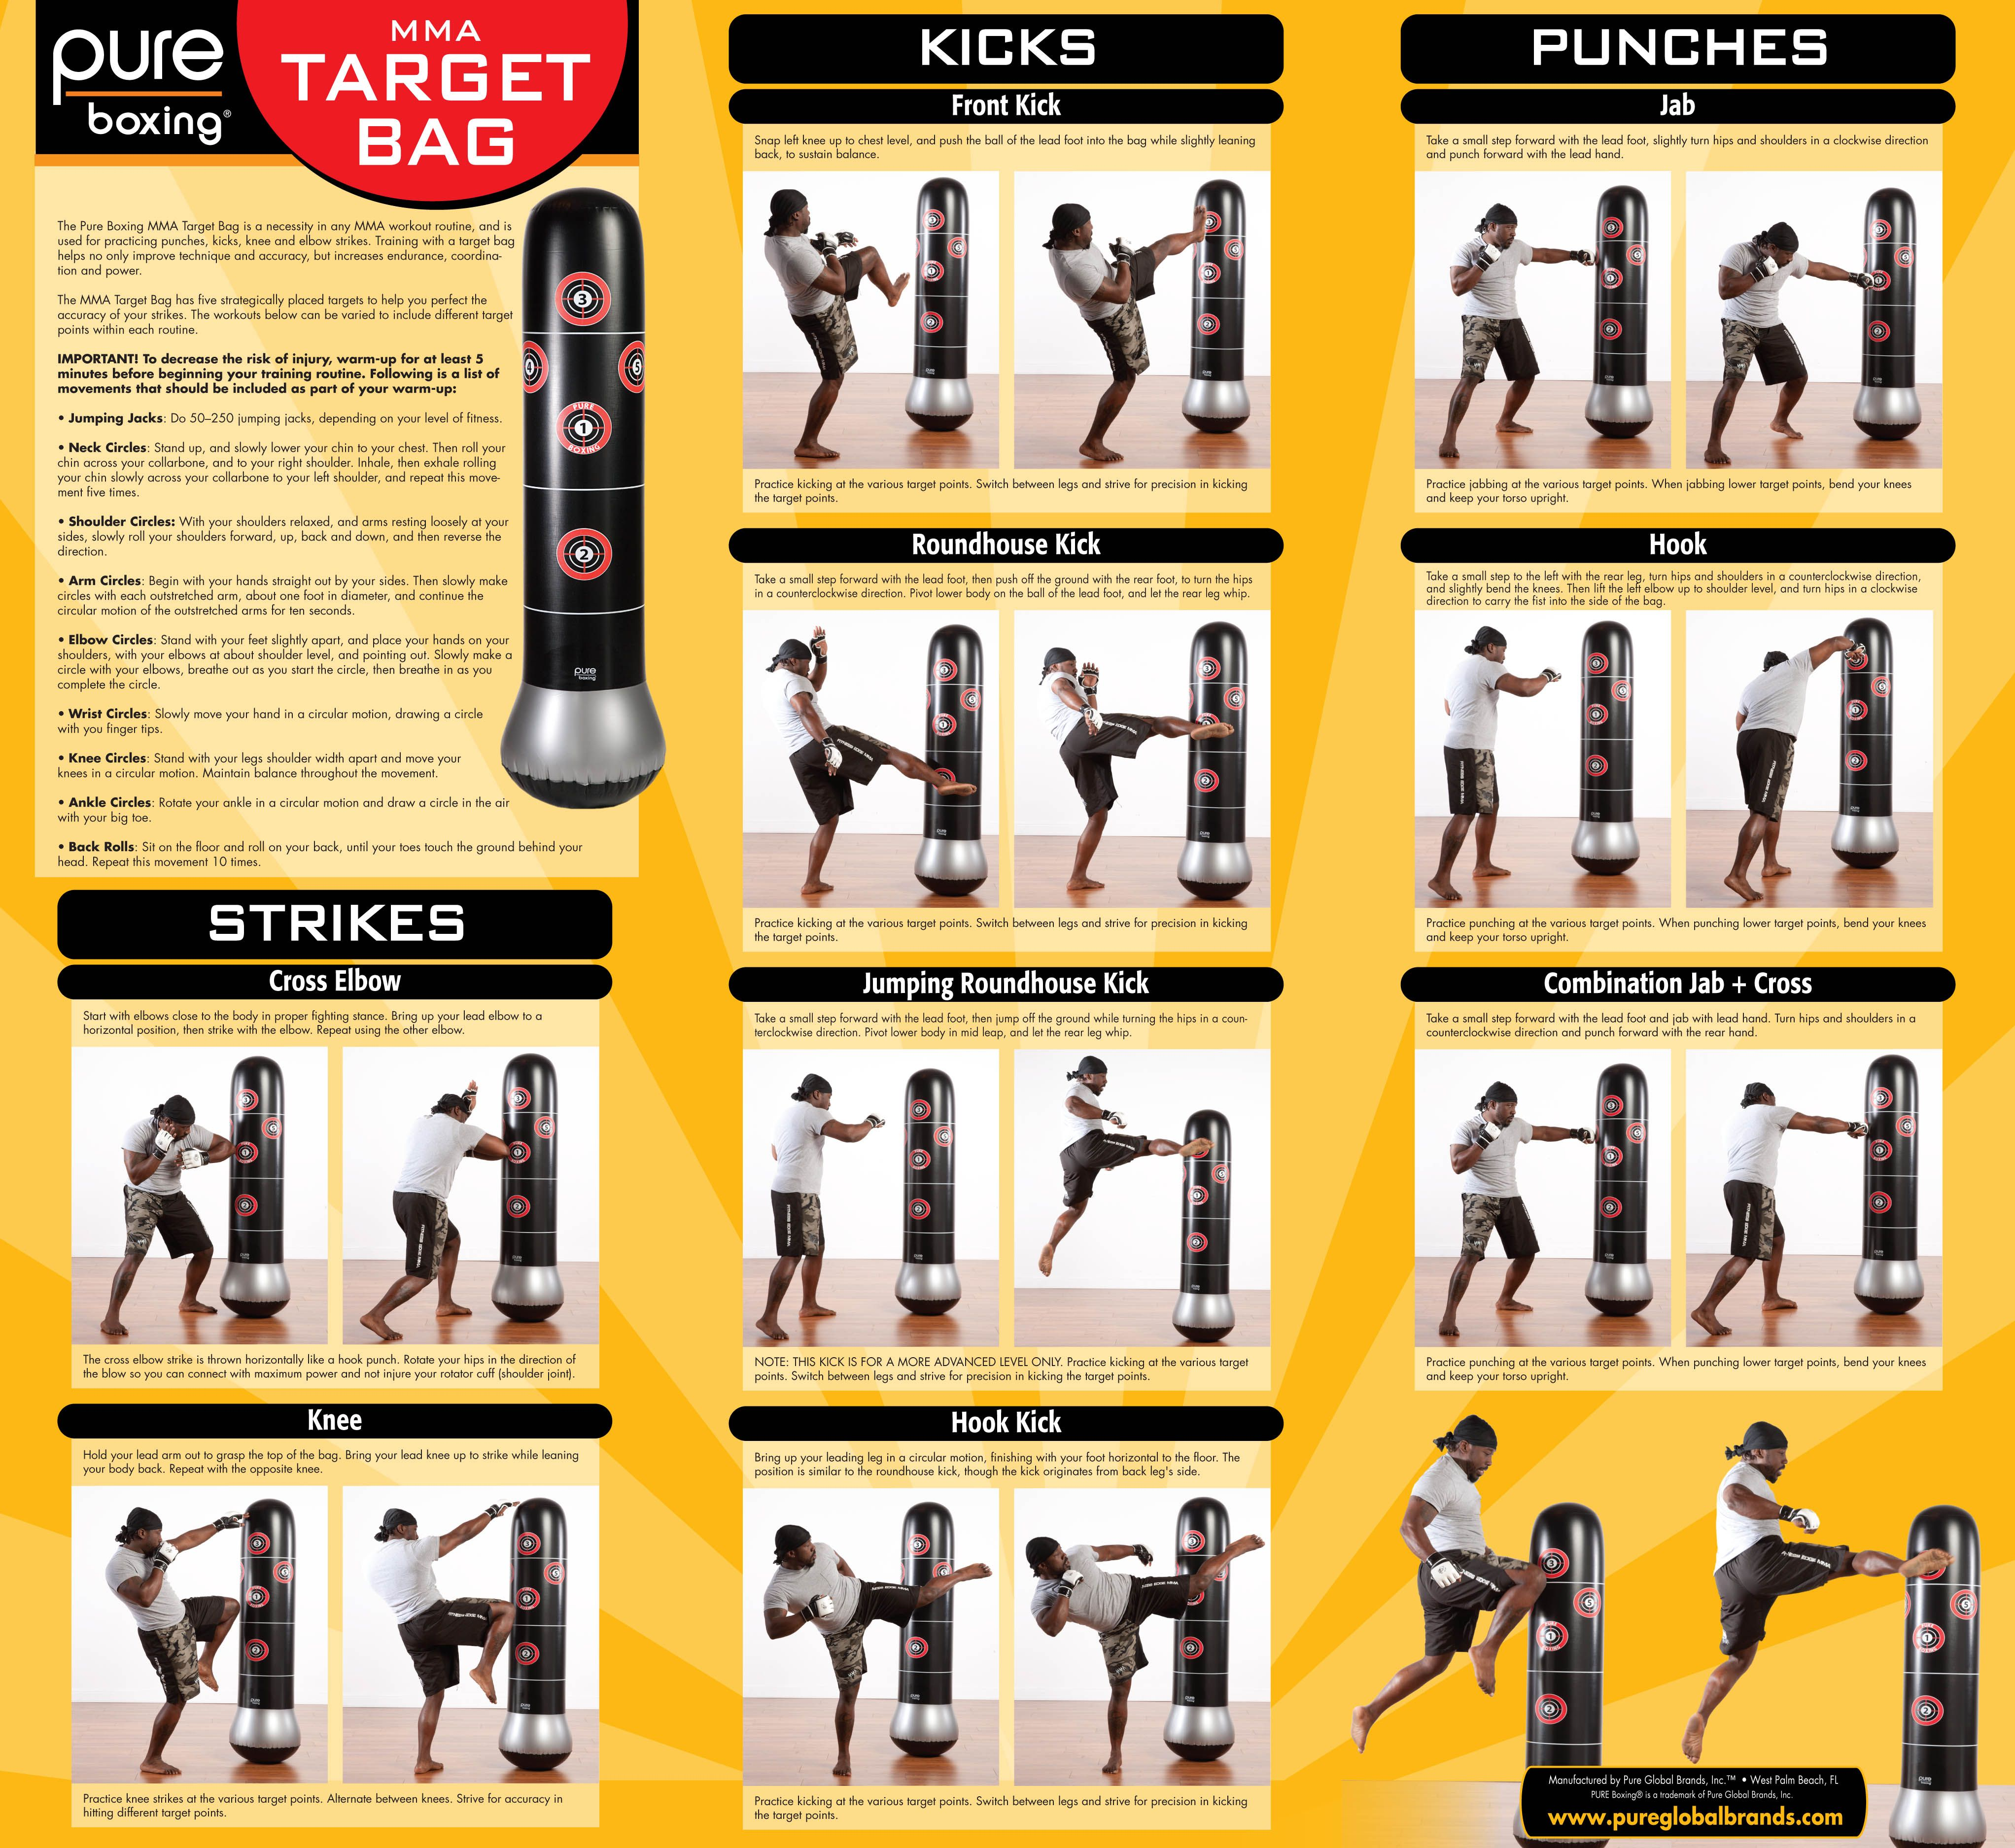 Mma Workout Poster Mma Workout Boxing Workout With Bag